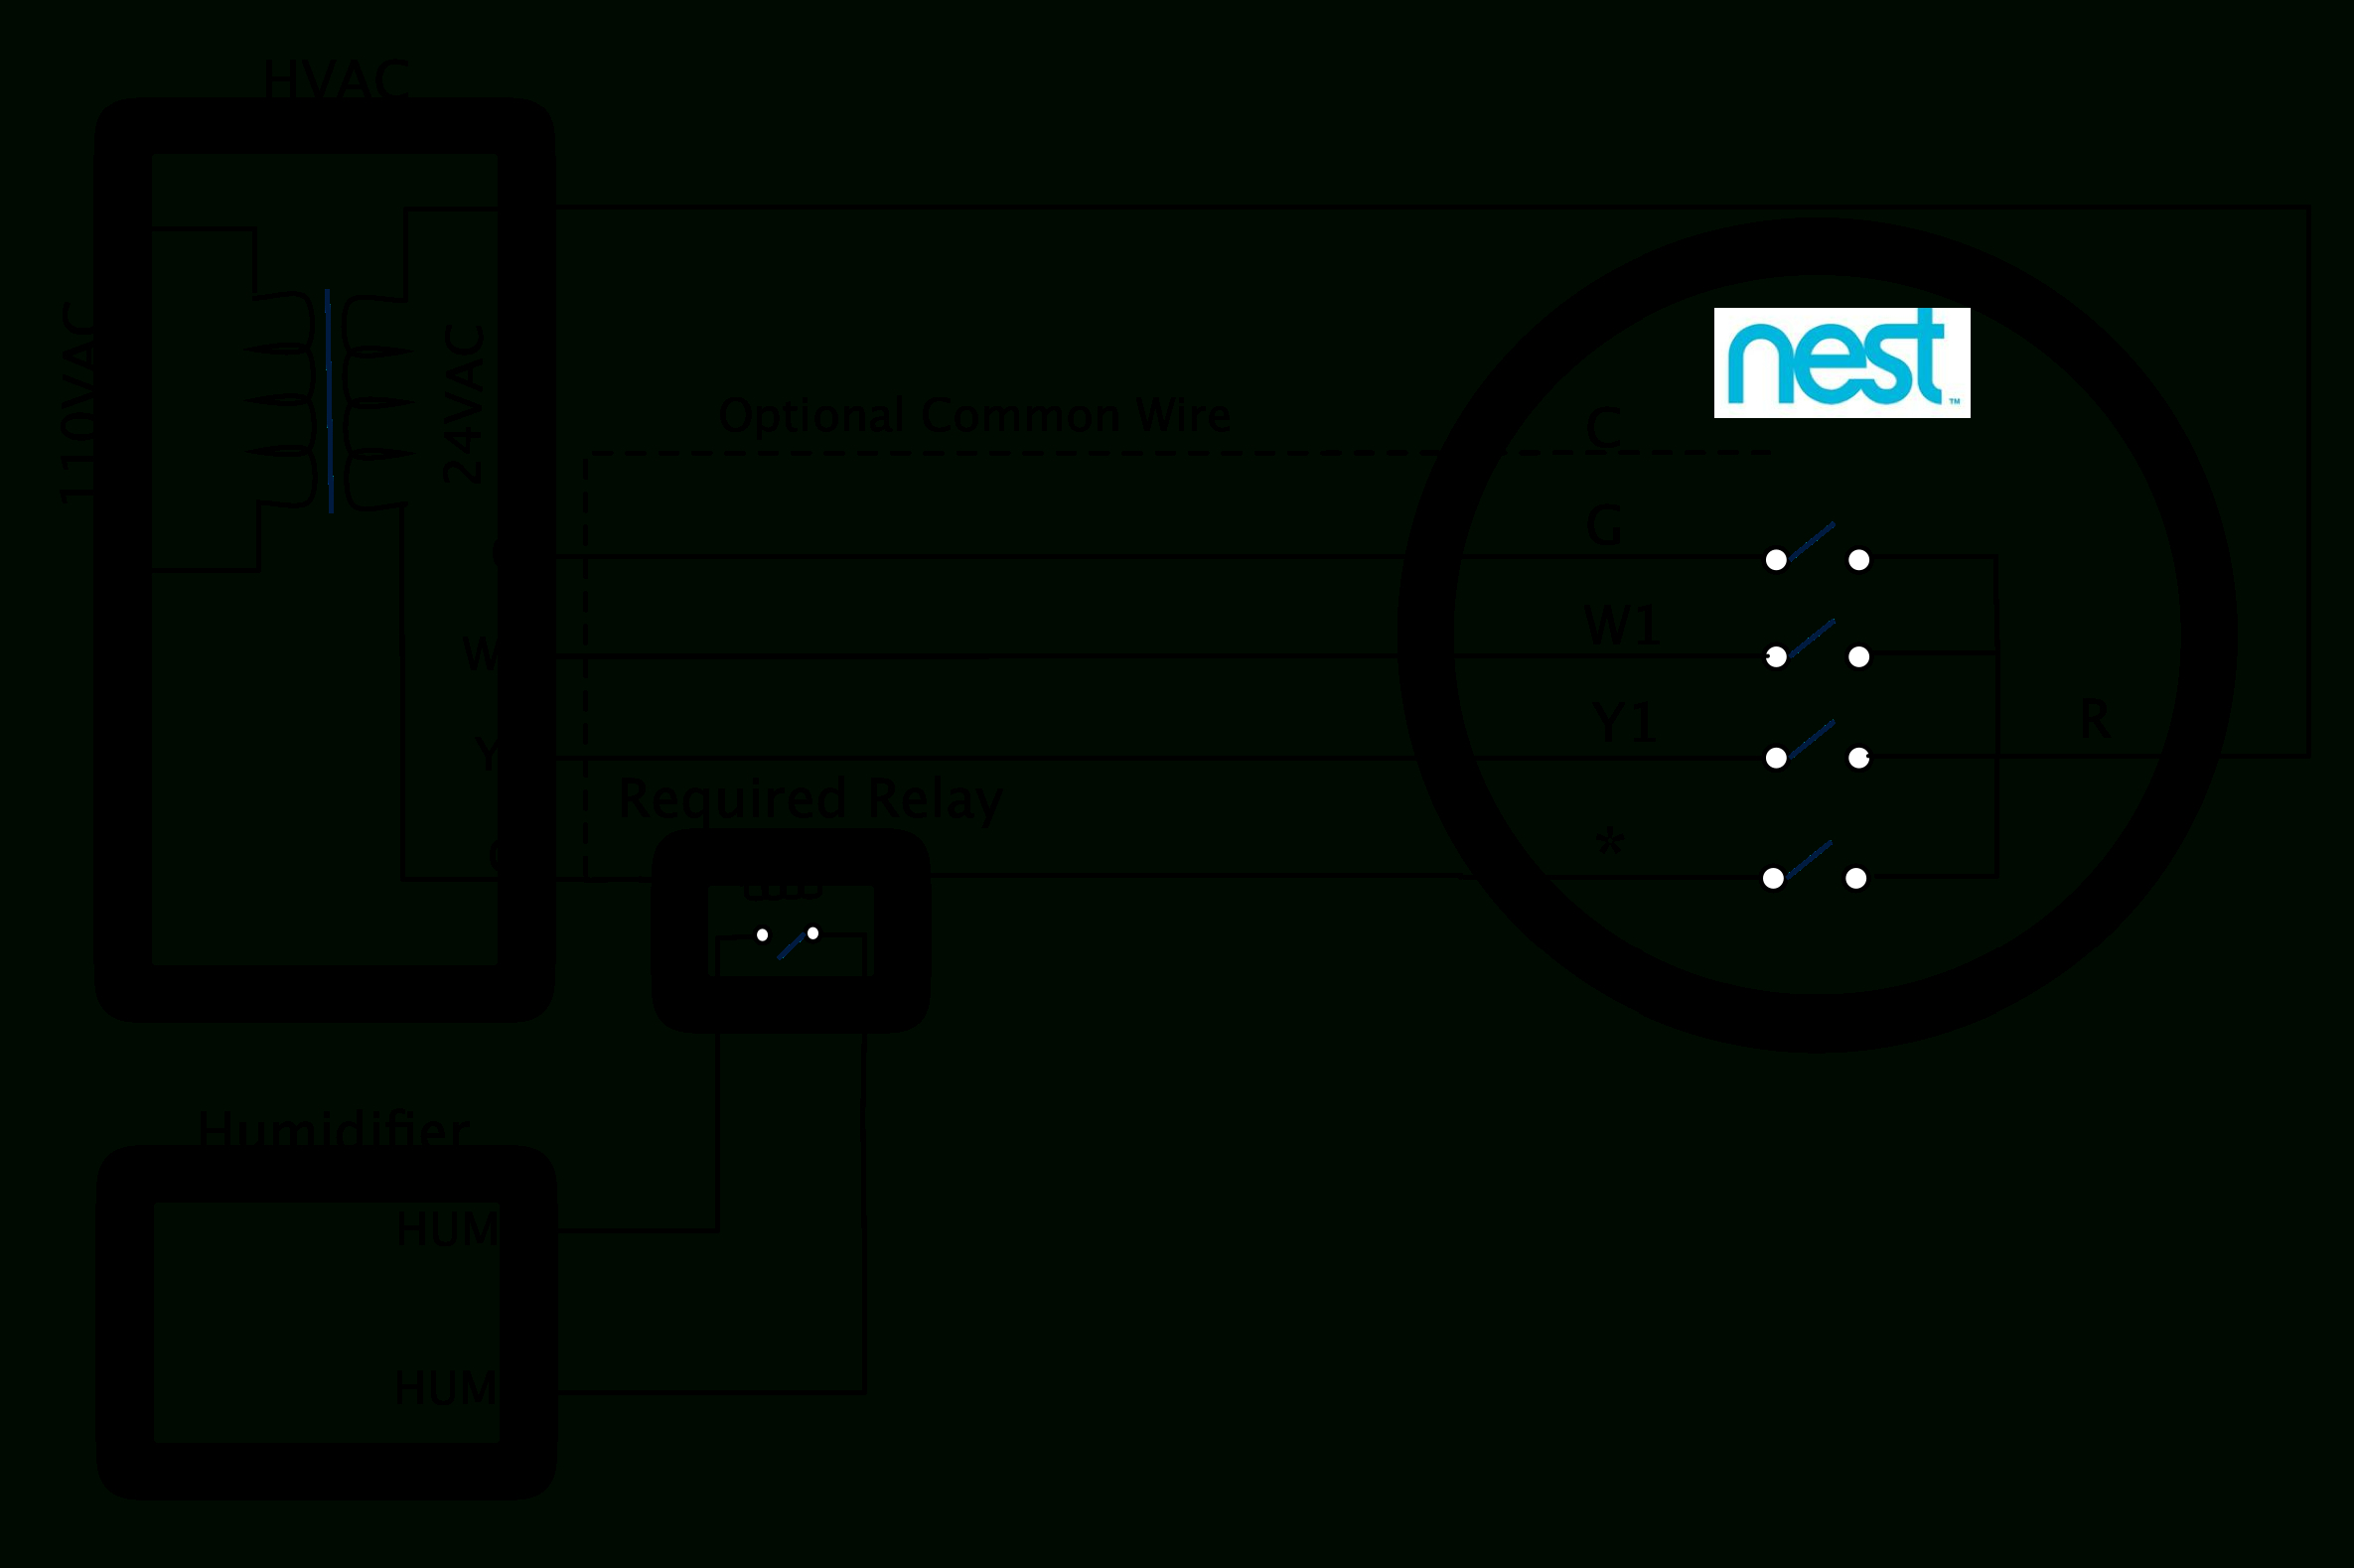 Nest Thermostat Wiring Diagram For Heat Only - Wiring Diagrams Click - Nest Wiring Color Diagram